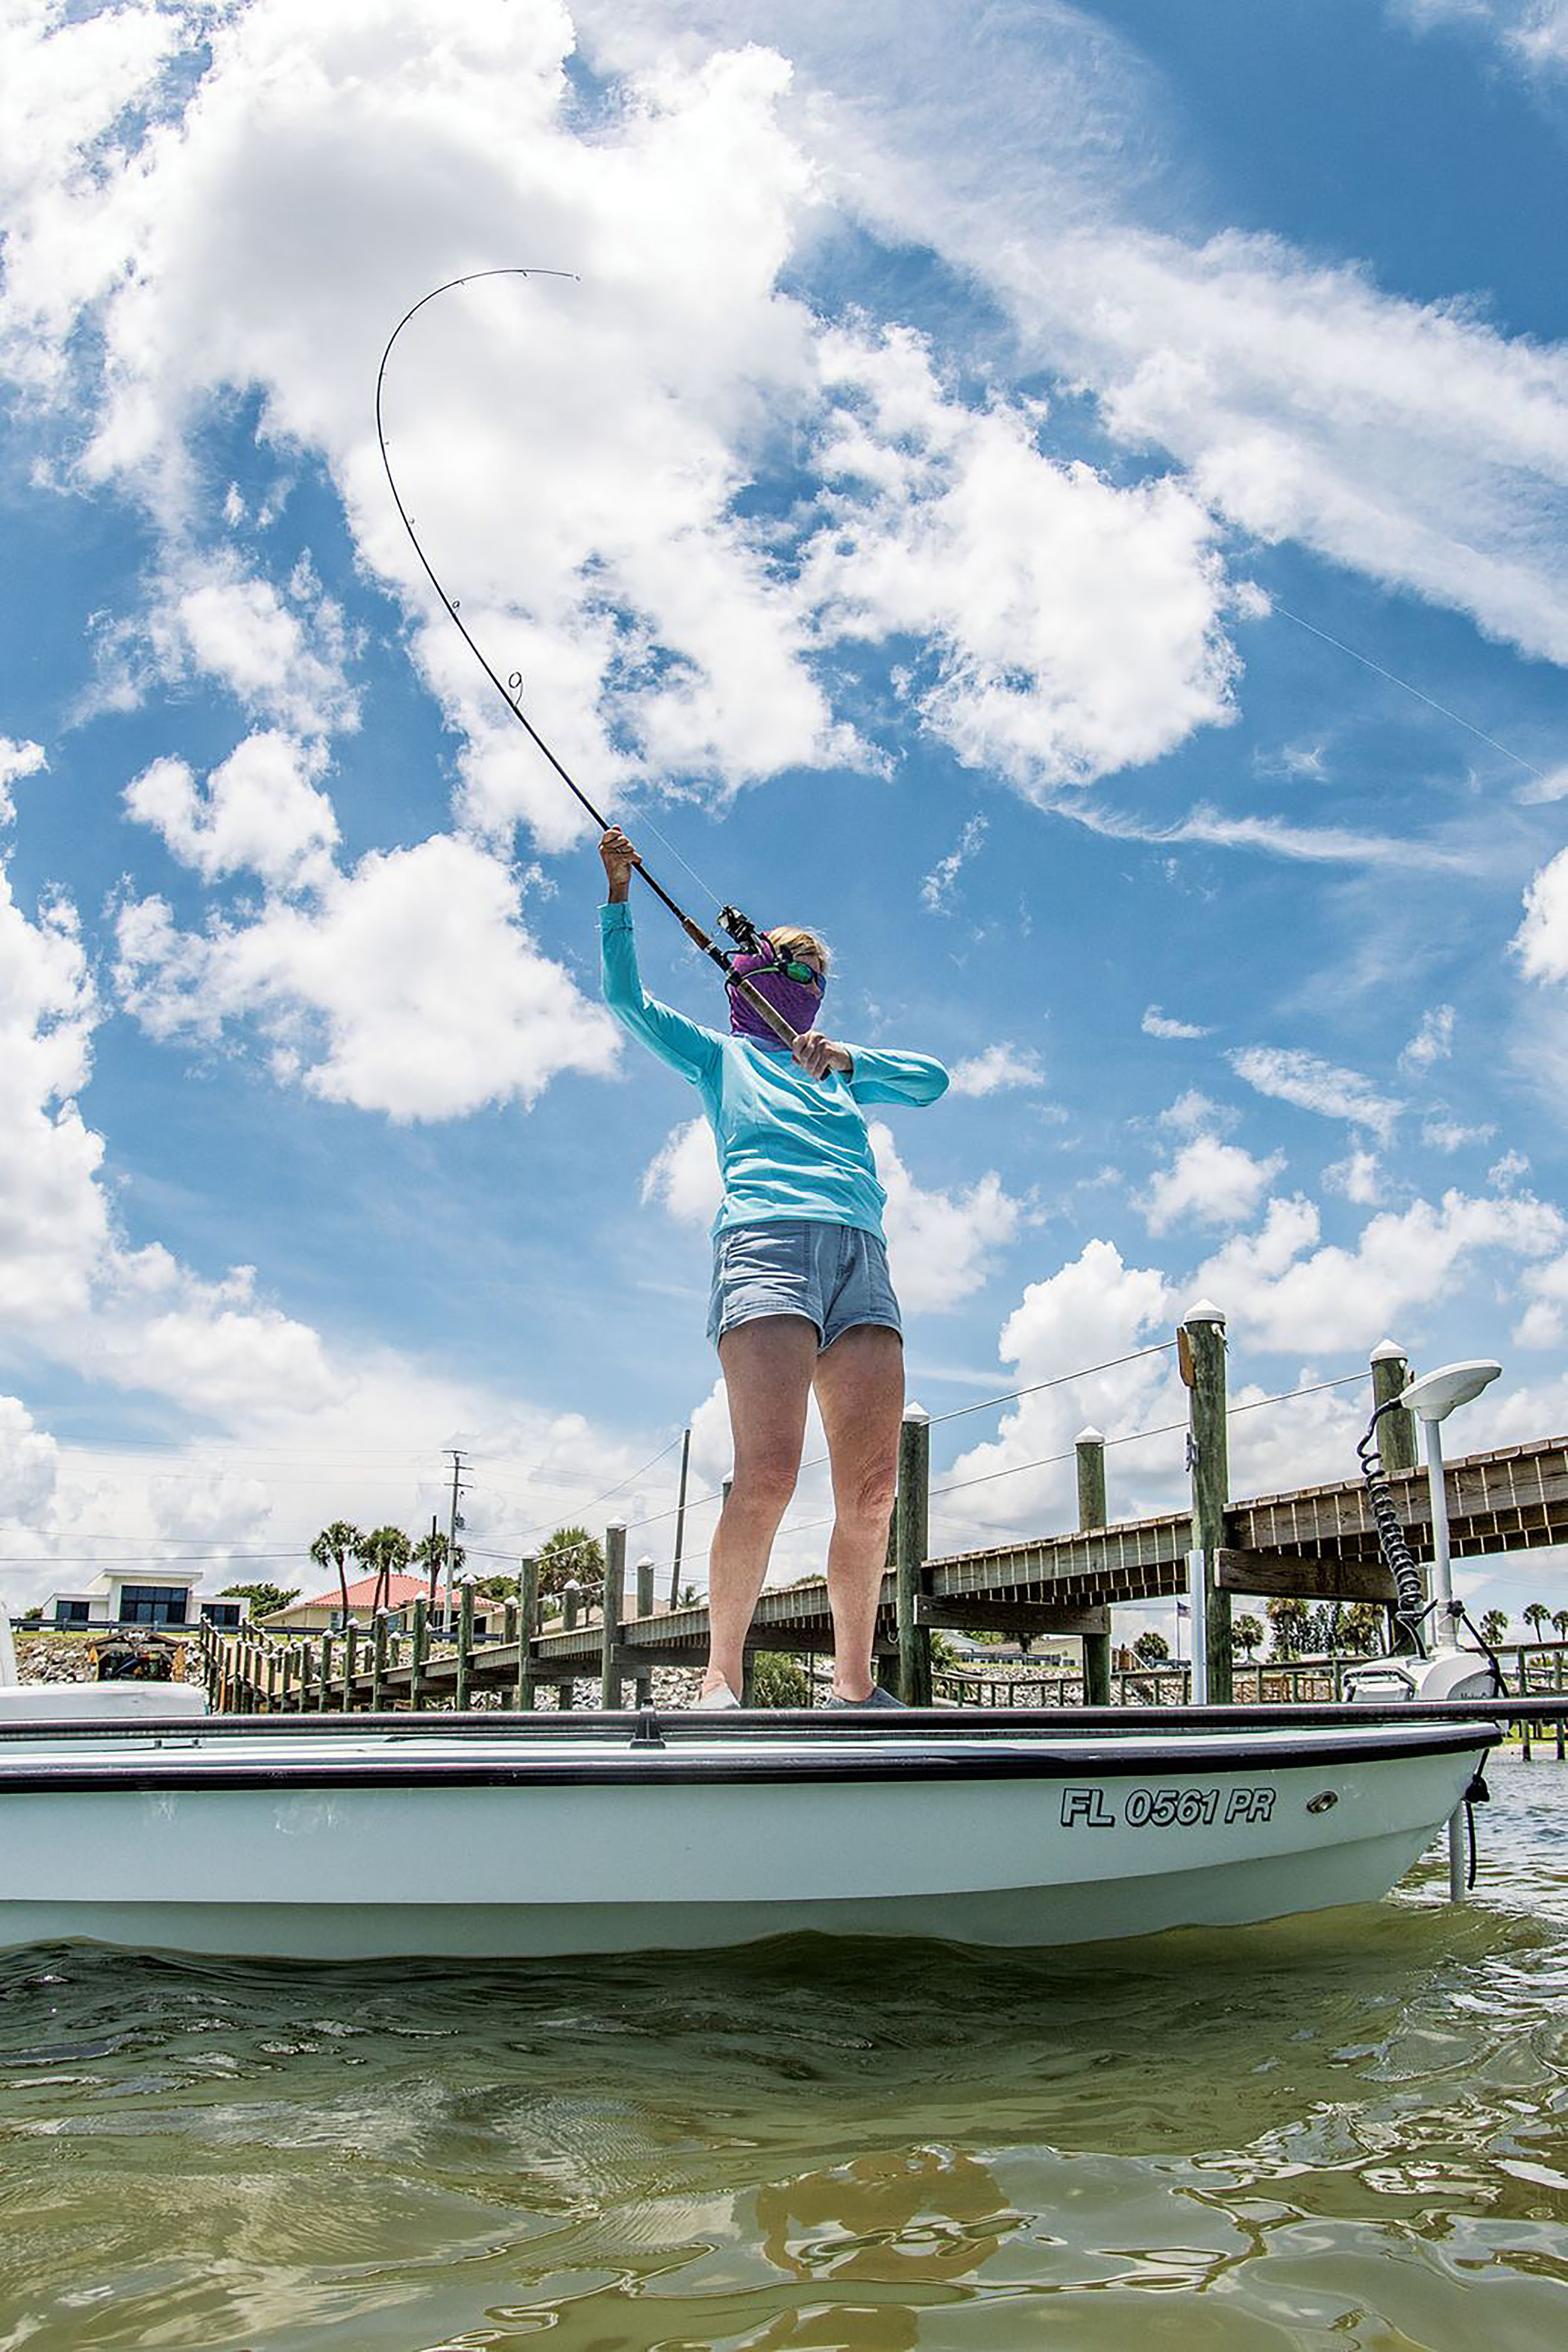 Curse of the high-sticked rod. Even experienced anglers can get a bit too enthusiastic when trying to coax in a big fish near the boat. This is particularly easy to do with fast-taper rods, which can easily snap in the stressed upper portion. In addition, this angler is making a second error that can lead to a broken rod by holding her hand far up on the rod blank, above the upper grip, where it should be. This alters the load dynamics and places stresses on the rod for which it wasn't designed. Adrian E. Gray